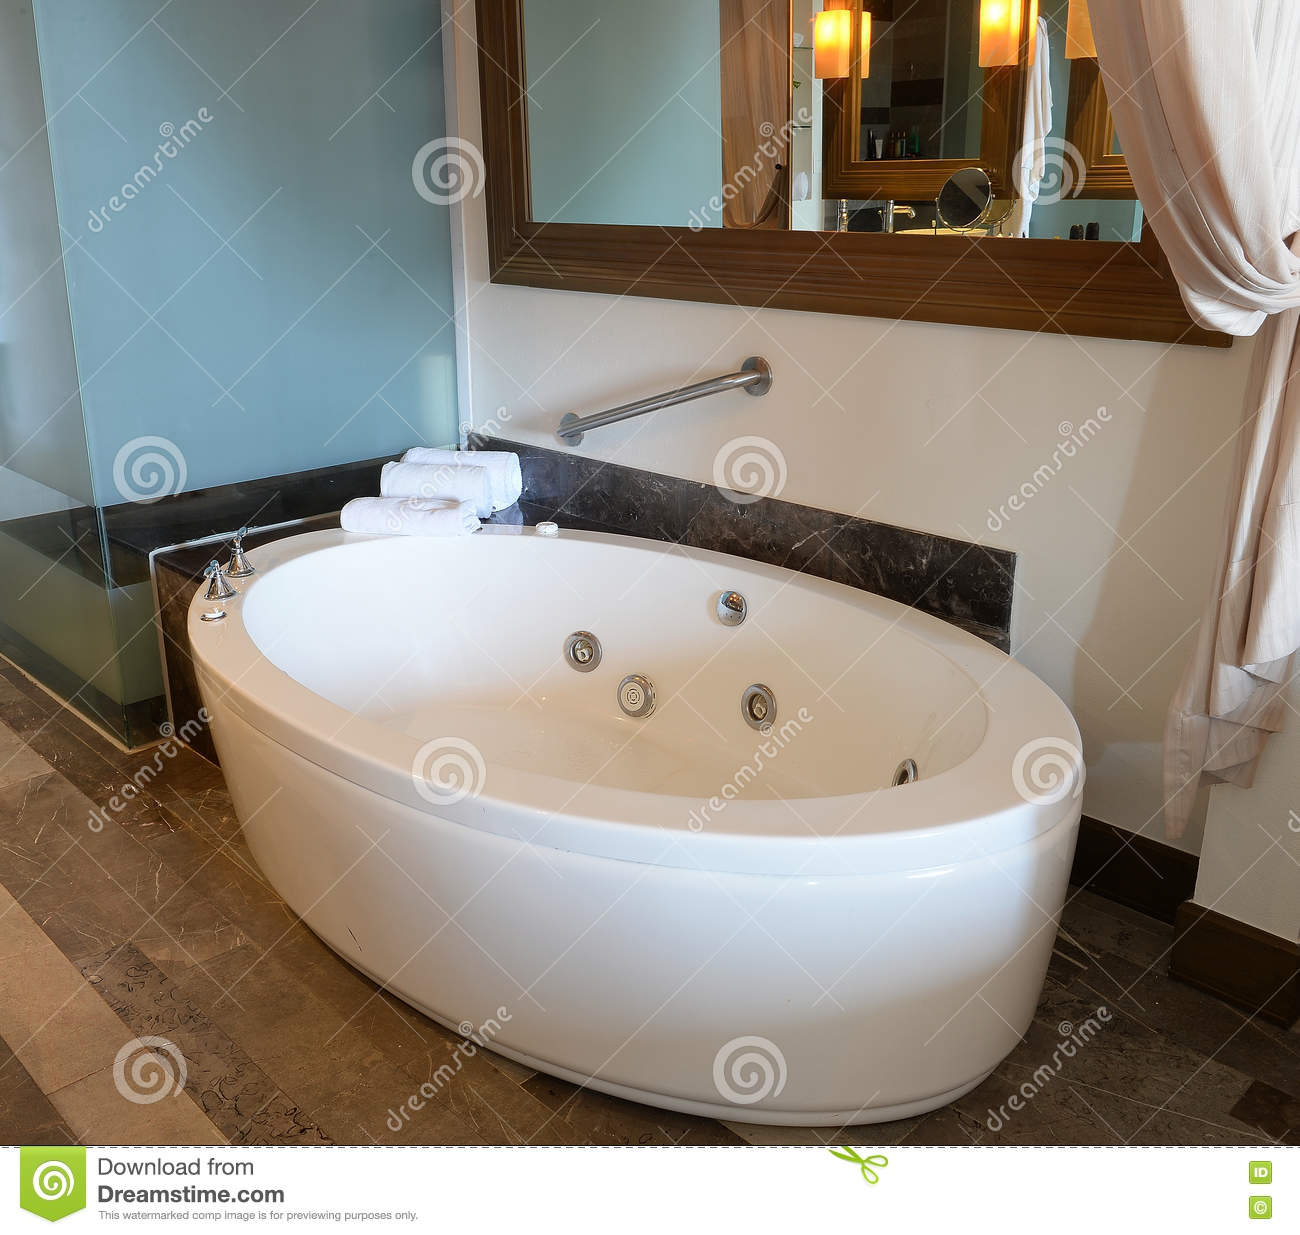 Spa Tub In Bathroom Stock Image Image Of Floor Vacant